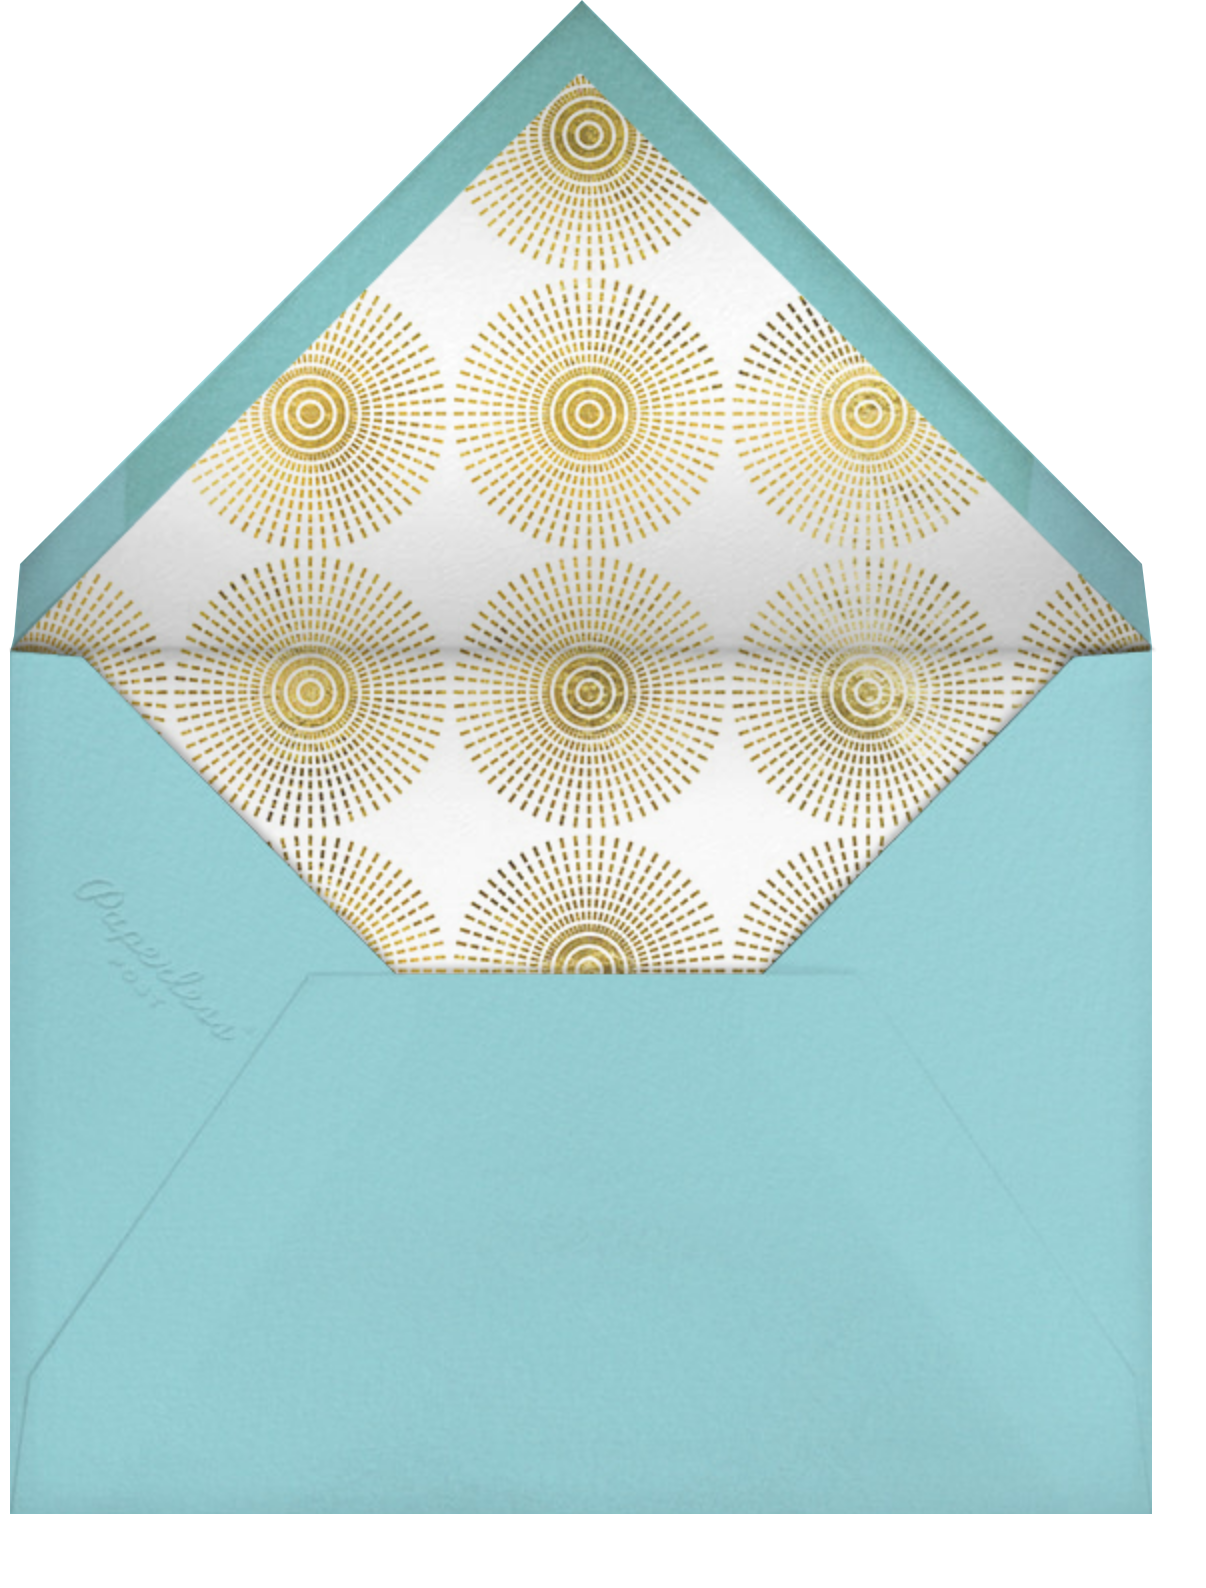 Fire Island Works - Jonathan Adler - 4th of July - envelope back